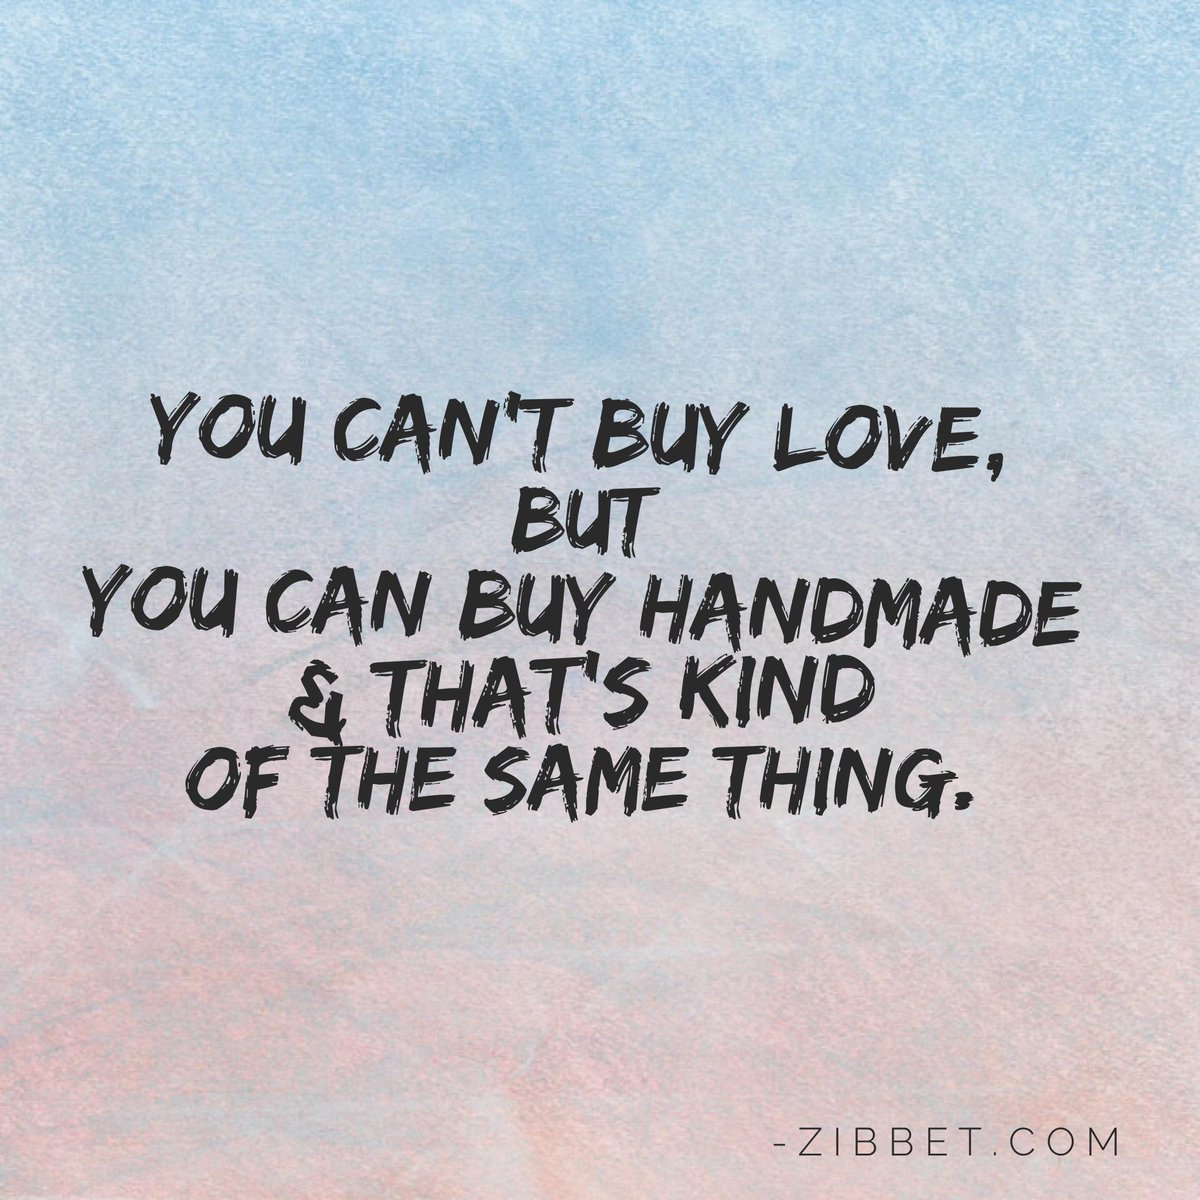 """You can't buy love, but you can buy handmade and that's kind of the same thing."" #SupportHandmade & share. #quote http://t.co/r3hT9ZlhnH"